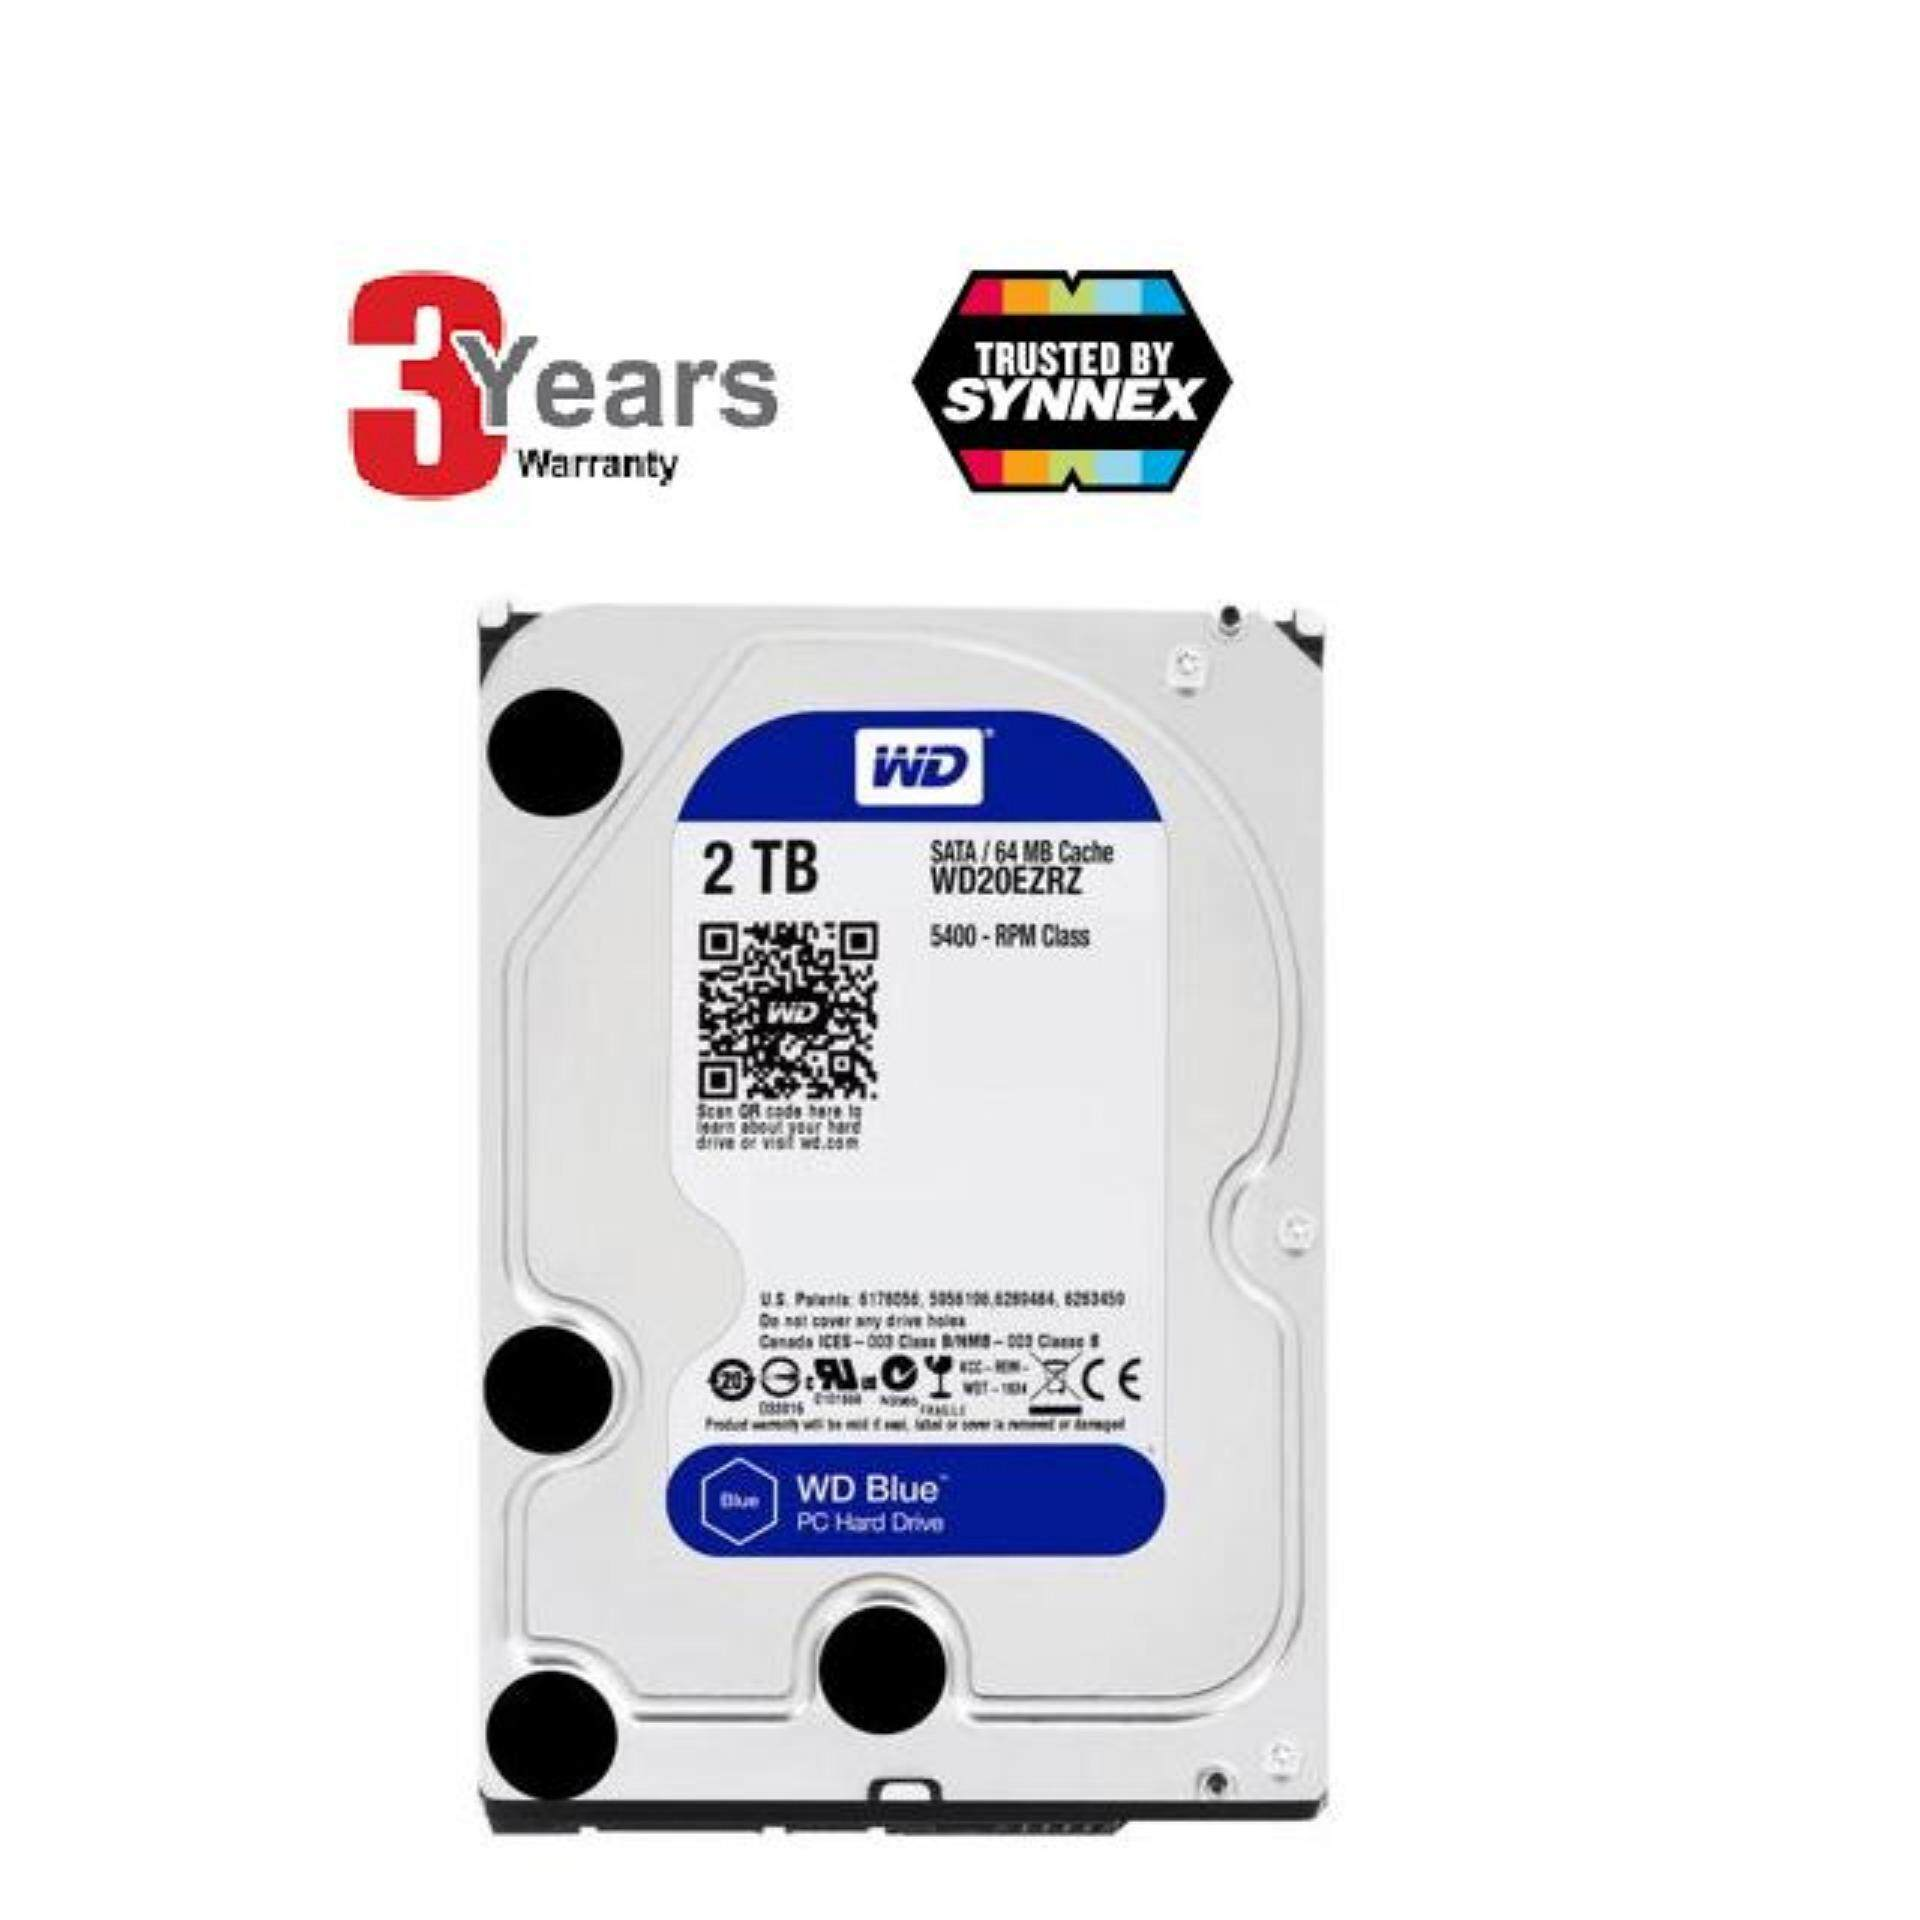 Western Digital WD Blue 2TB Desktop HDD Internal Hard Disk Drive 5400 RPM SATA 6Gb/s 64MB Cache 3.5-inch WD20EZRZ BY SYNNEX